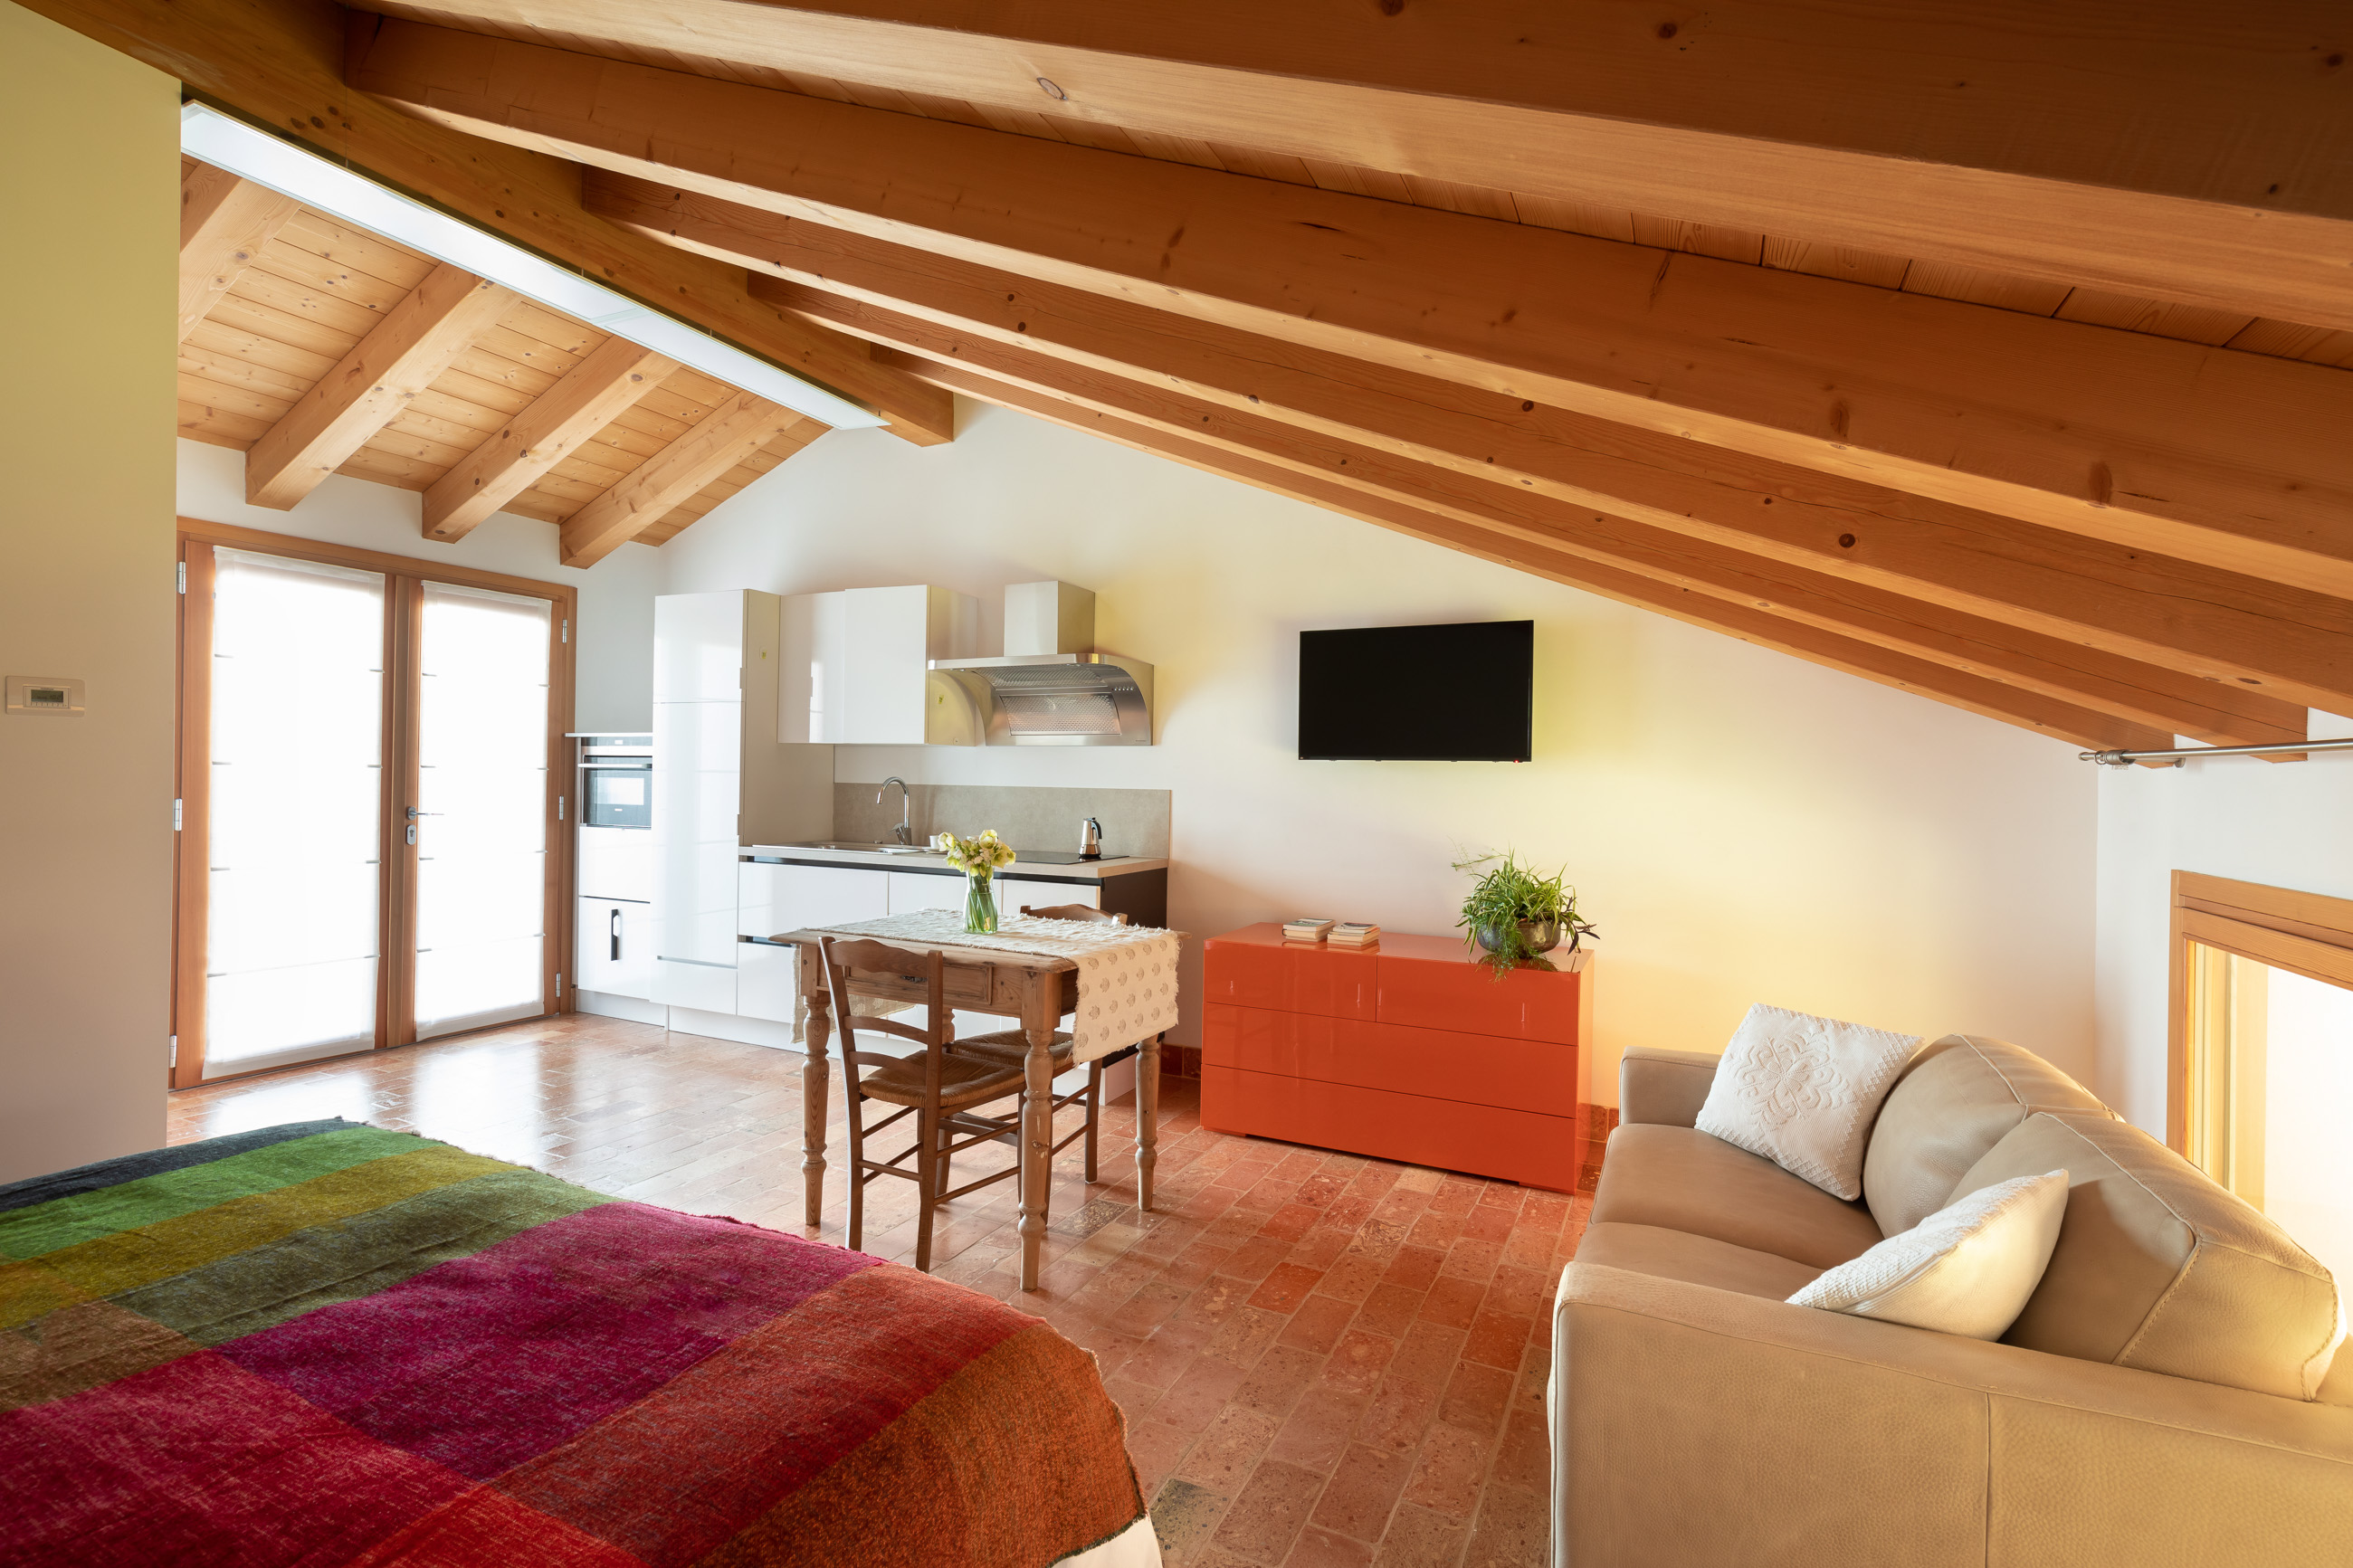 eco-friendly house Casa Fiorindo: an indoor space with modern furniture, but traditional materials (cotto tile, wood)